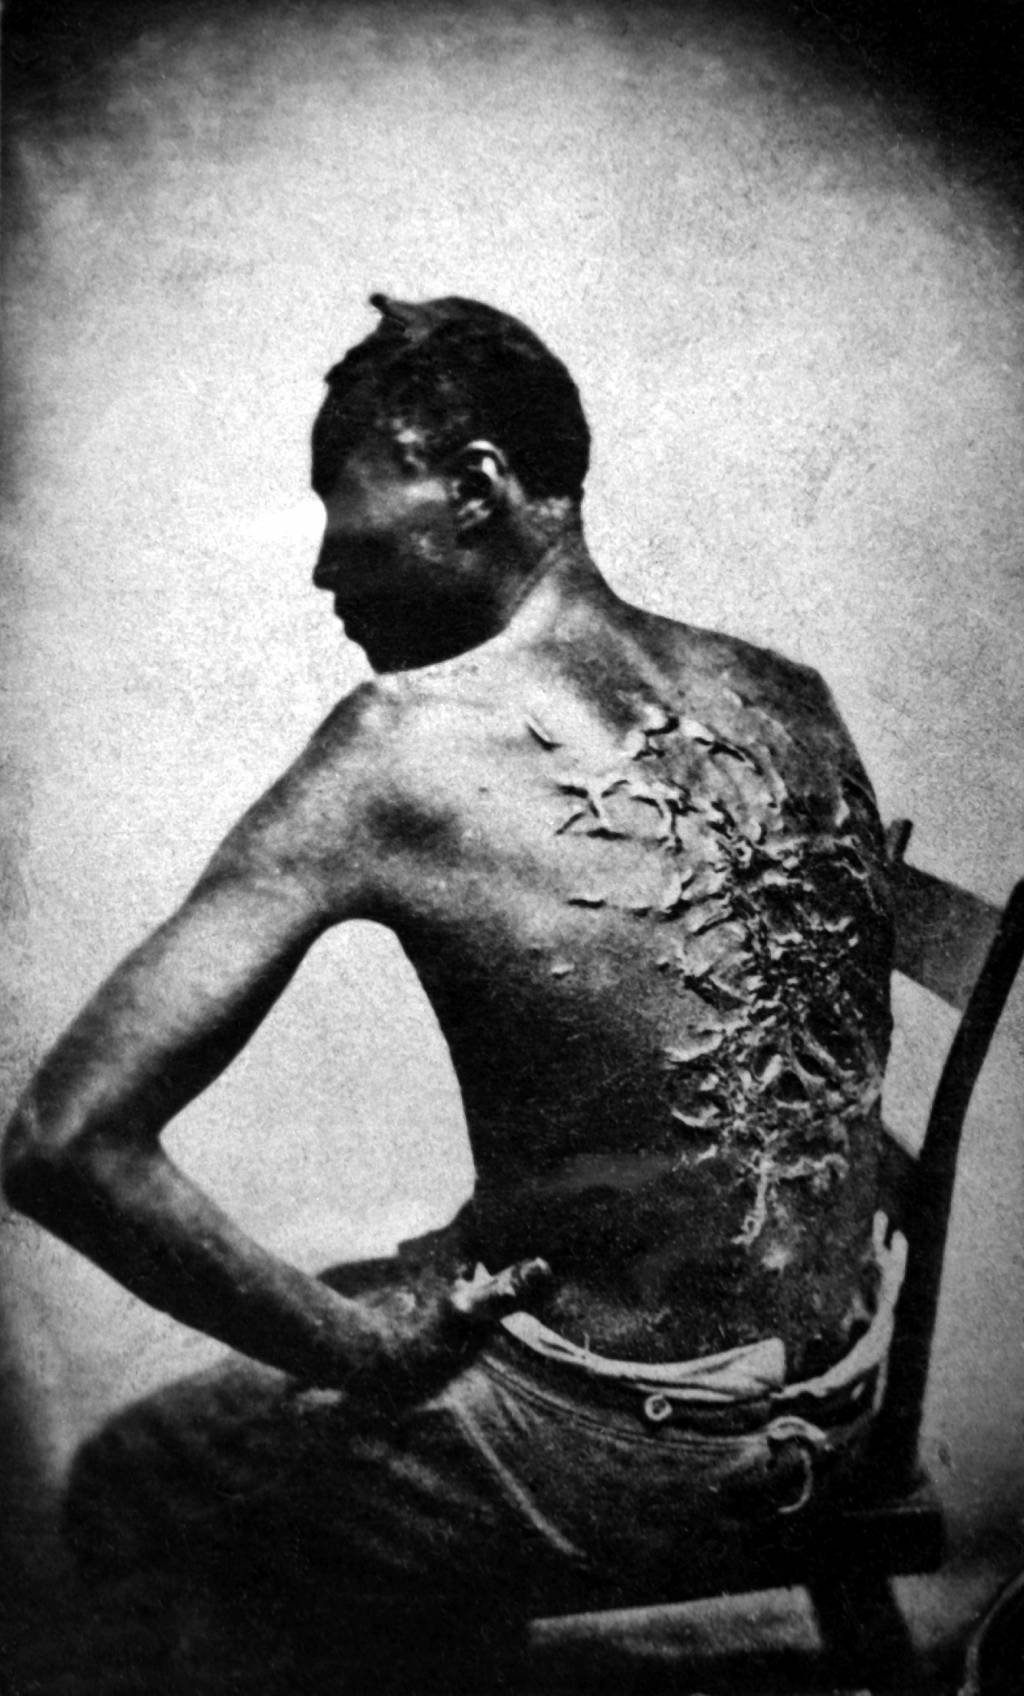 compare and contrast essay on the north and south writework scars of a whipped slave 2 1863 baton rouge louisiana